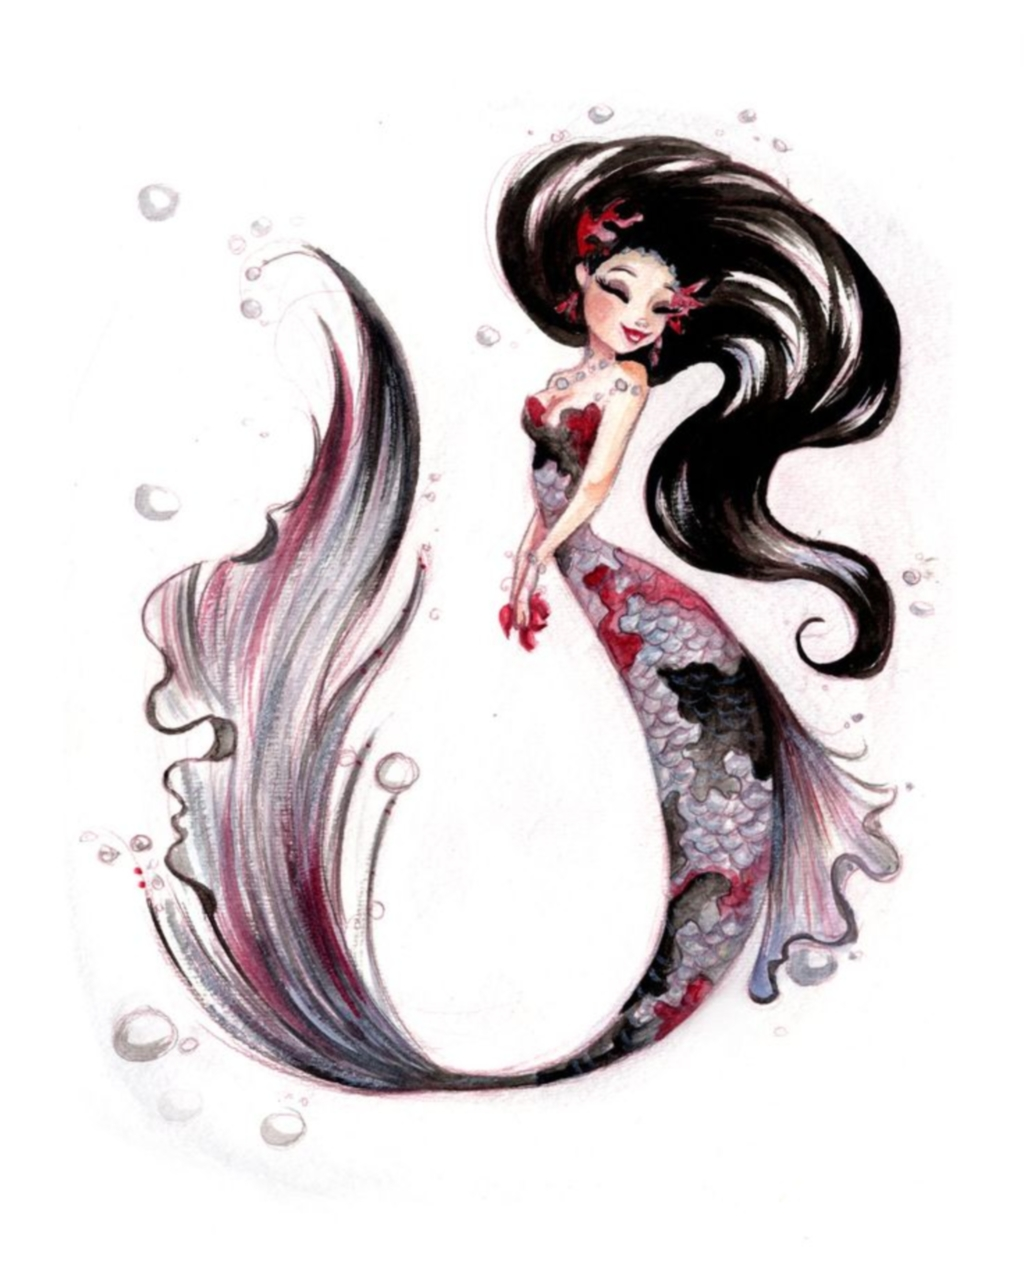 1024x1280 Silver Koi Fish Print By Lianahee Illustrations Amp Posters